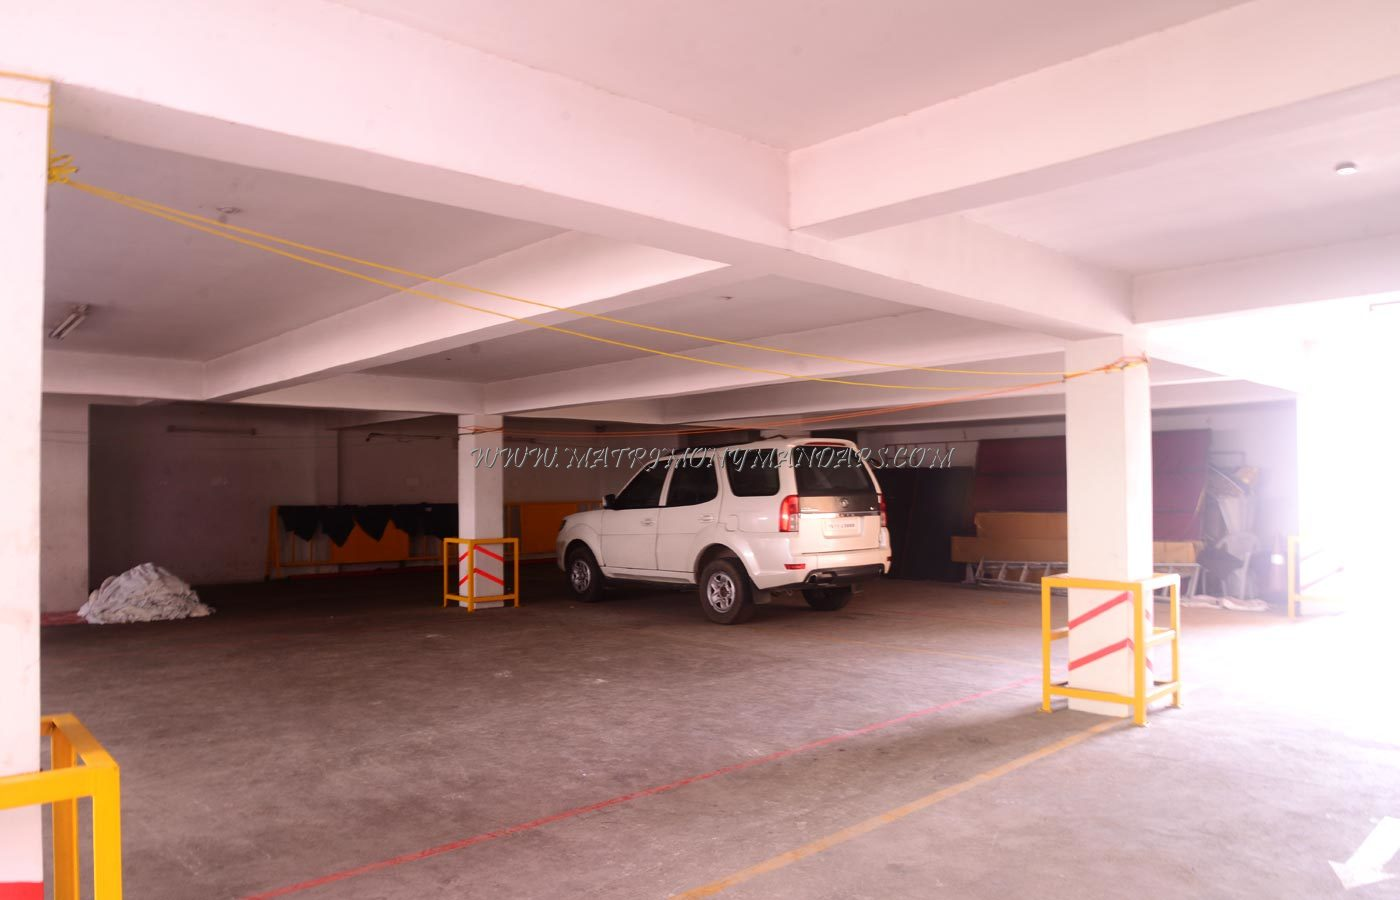 Sivasakthi Thirumana Mandapam - Car Parking